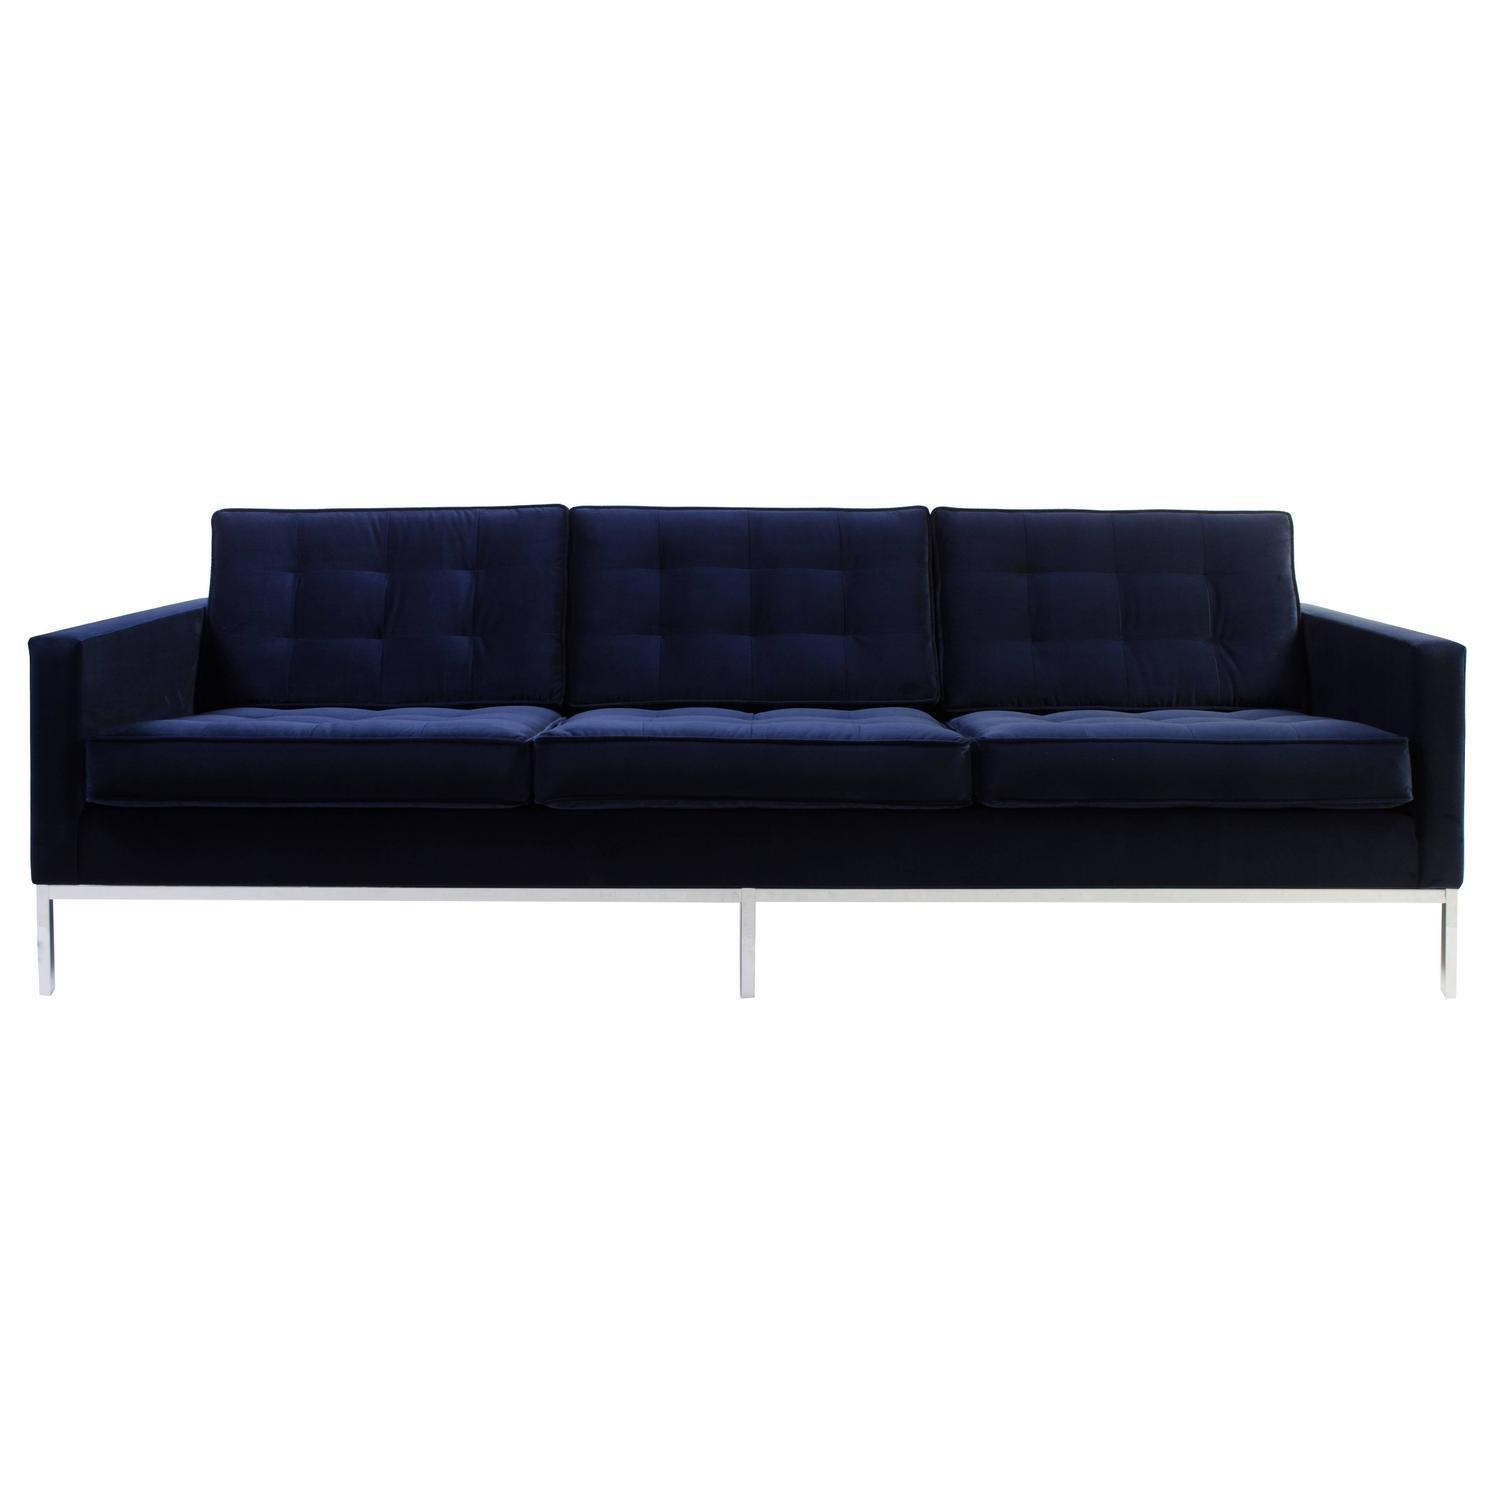 Florence Knoll Sofa In Navy Velvet For Sale At 1Stdibs Inside Knoll Sofas (Image 8 of 20)